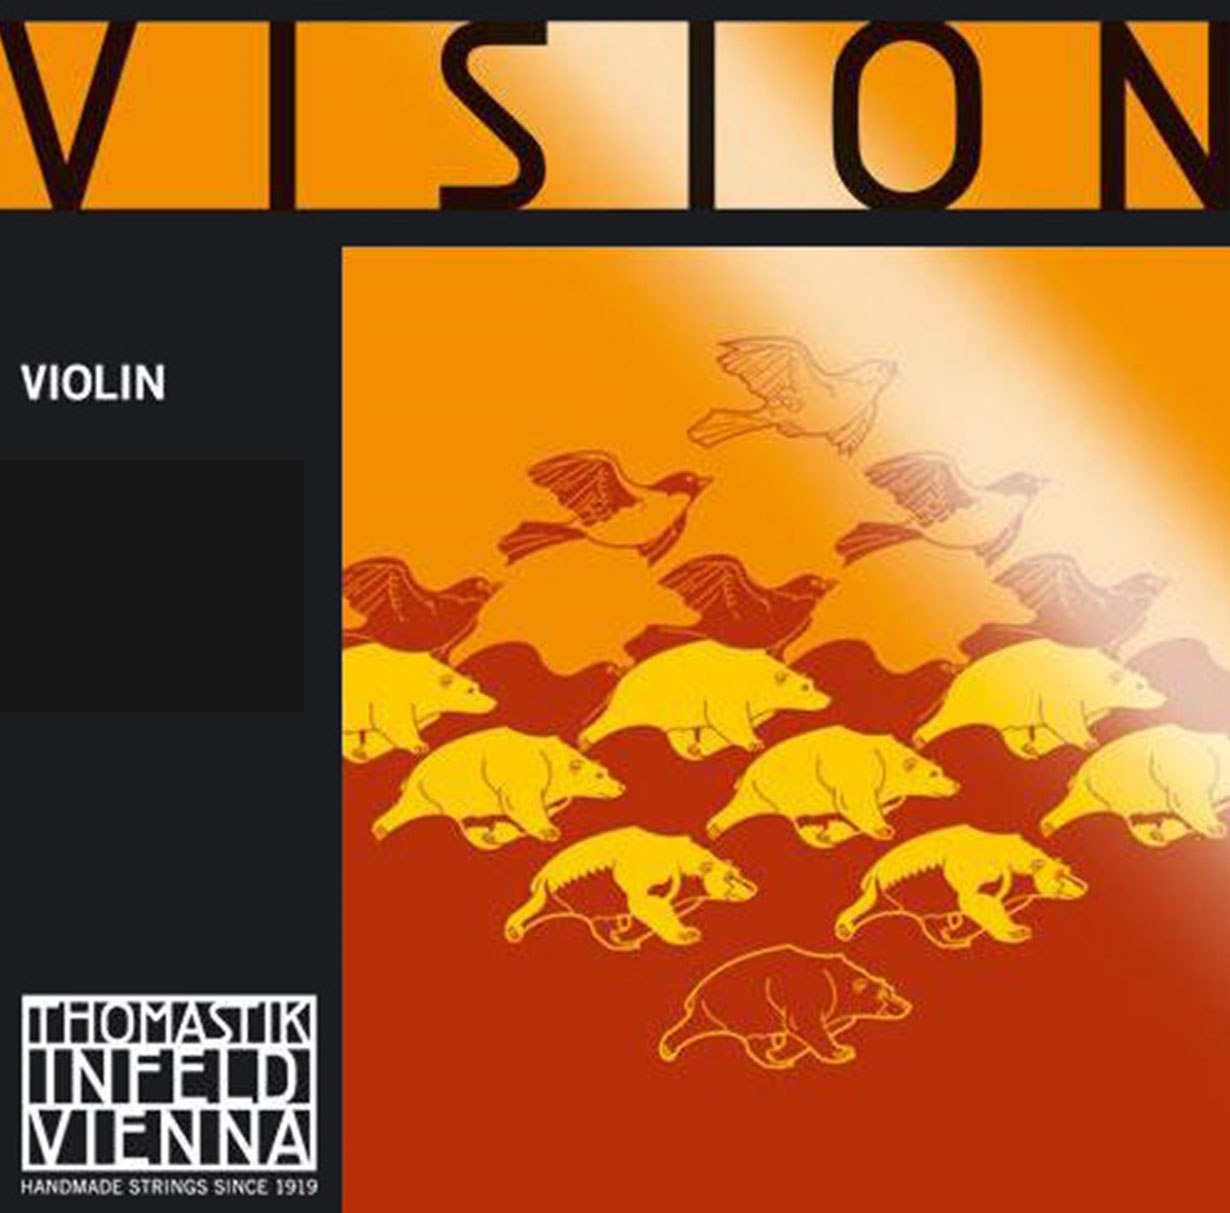 Thomastik Infeld Vision Violin E String